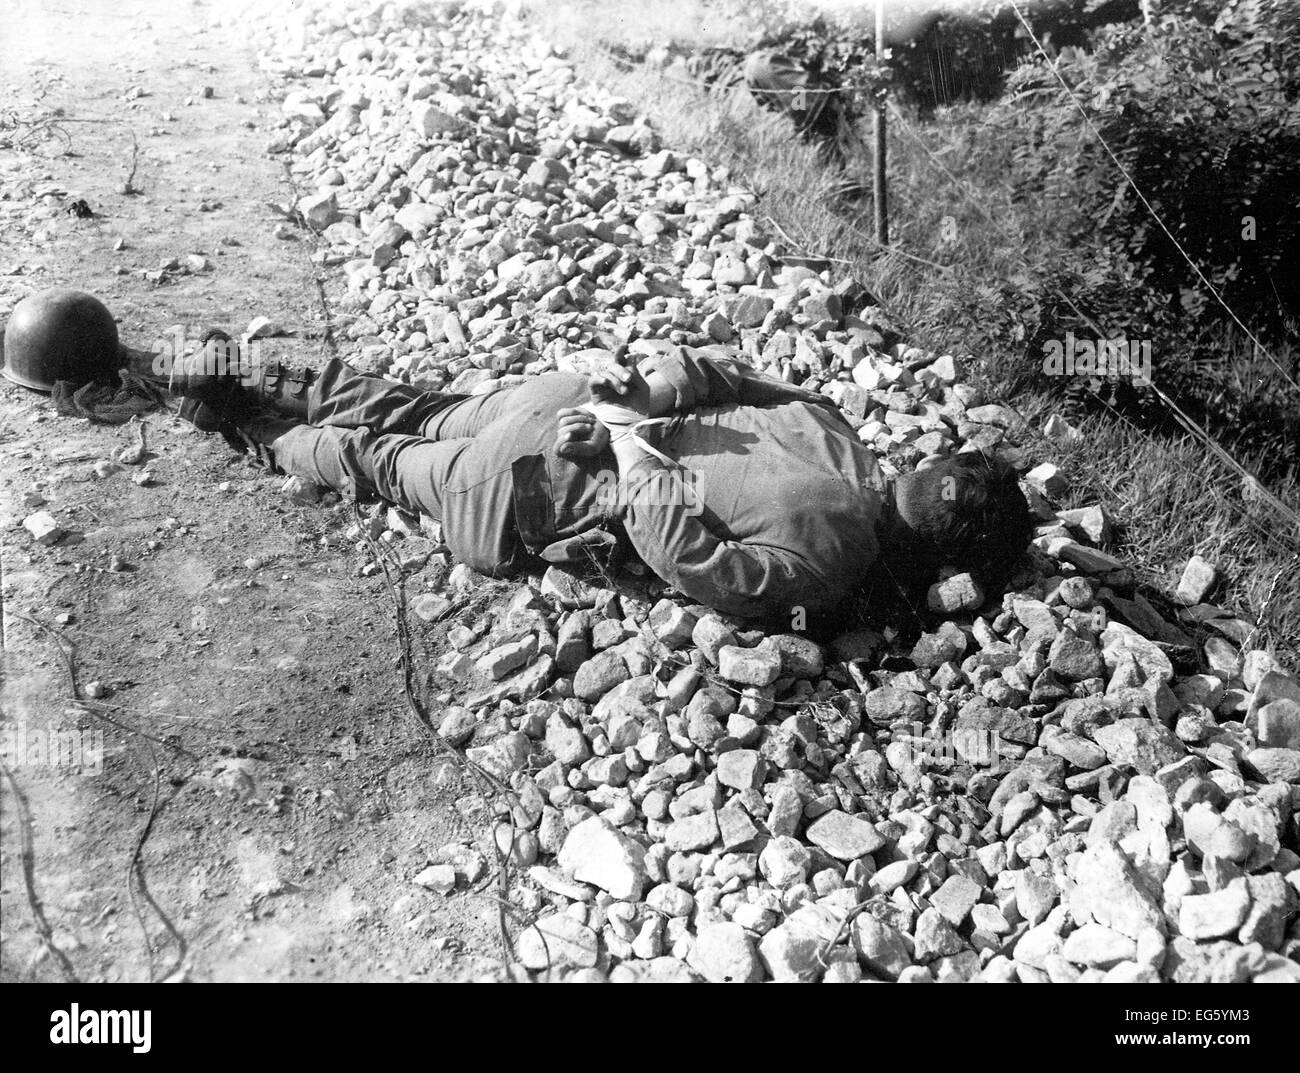 KOREAN WAR (1950-1953) Executed South Korean soldier with hands tied behind his back - Stock Image